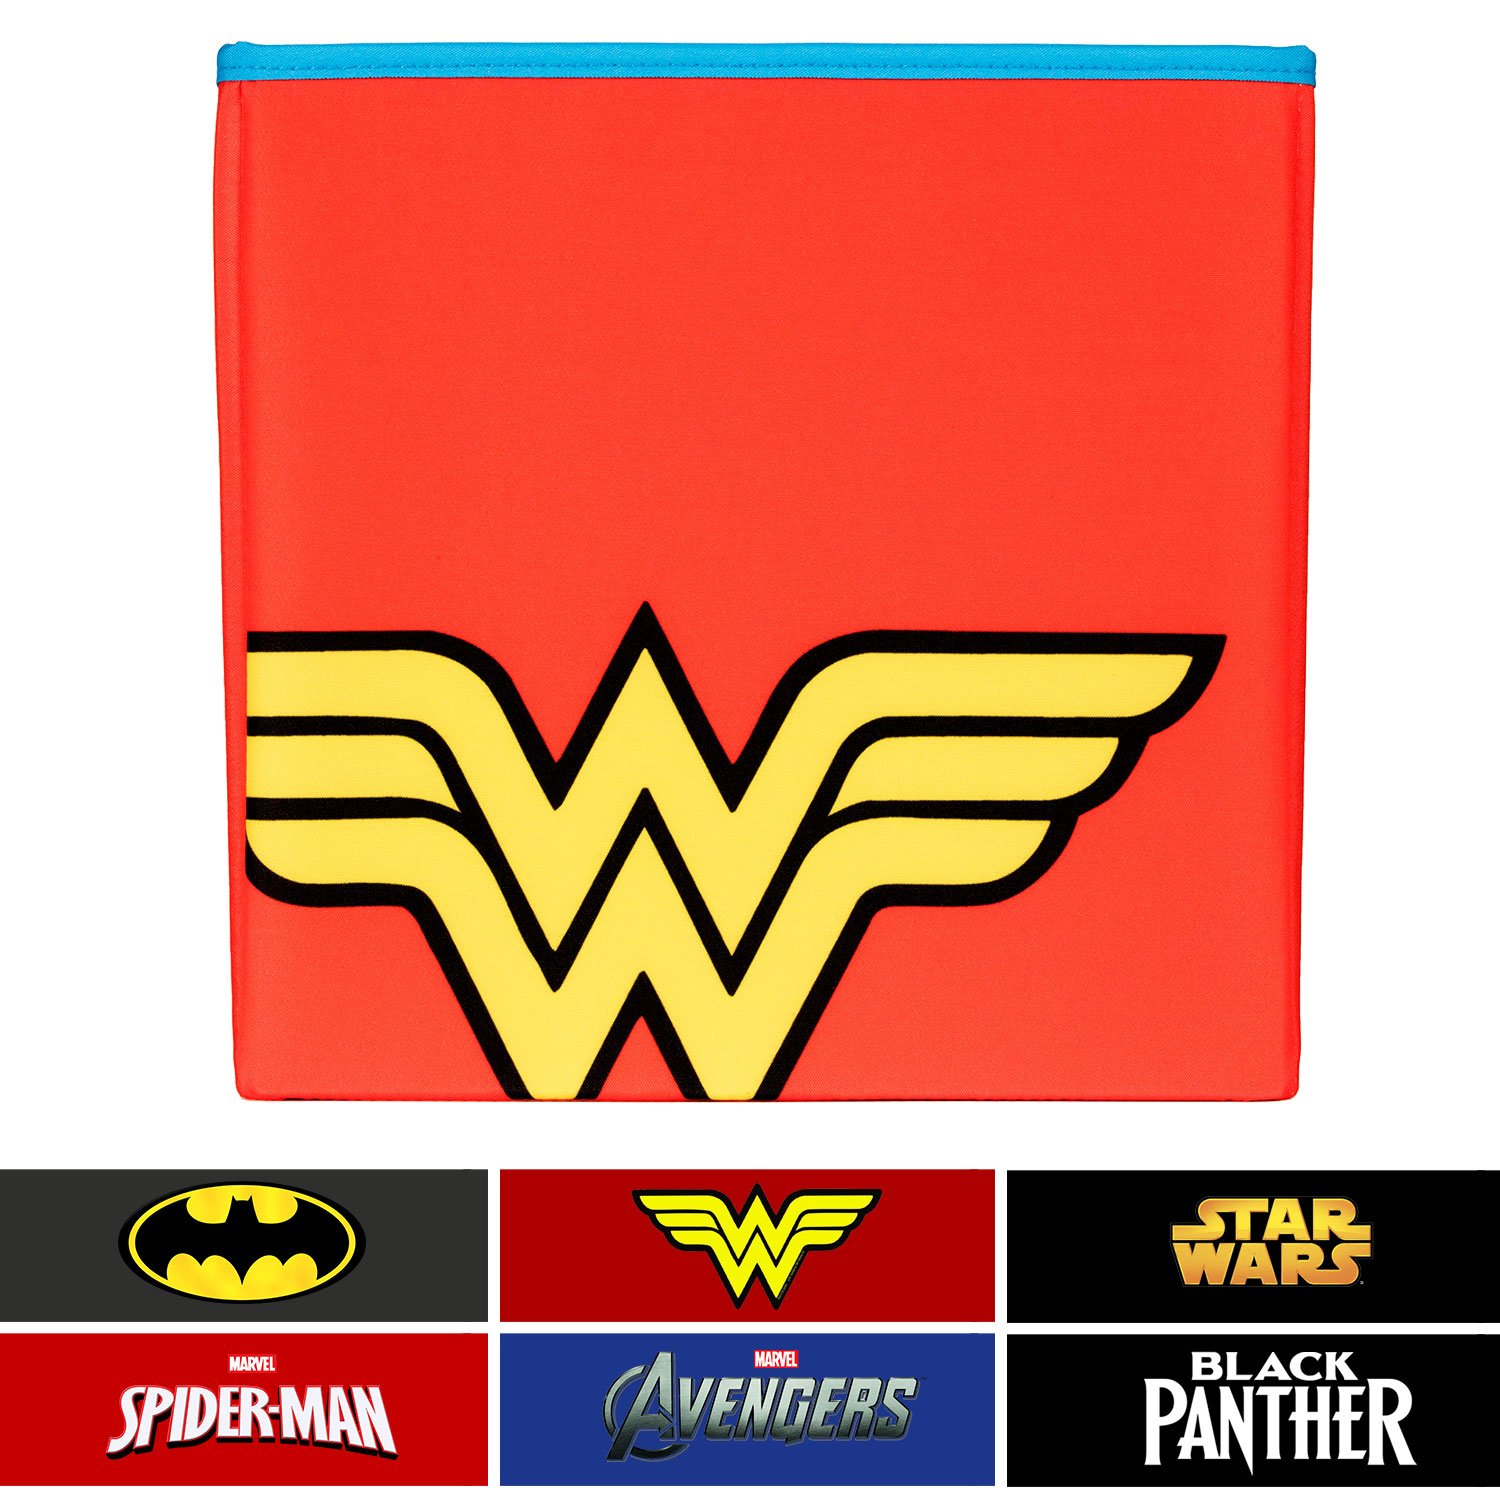 Everything Mary Wonder Woman Collapsible Storage Bin by DC Comics - Cube Organizer for Closet, Kids Bedroom Box, Playroom Chest - Foldable Home Decor Basket Container with Strong Handles and Design by Everything Mary